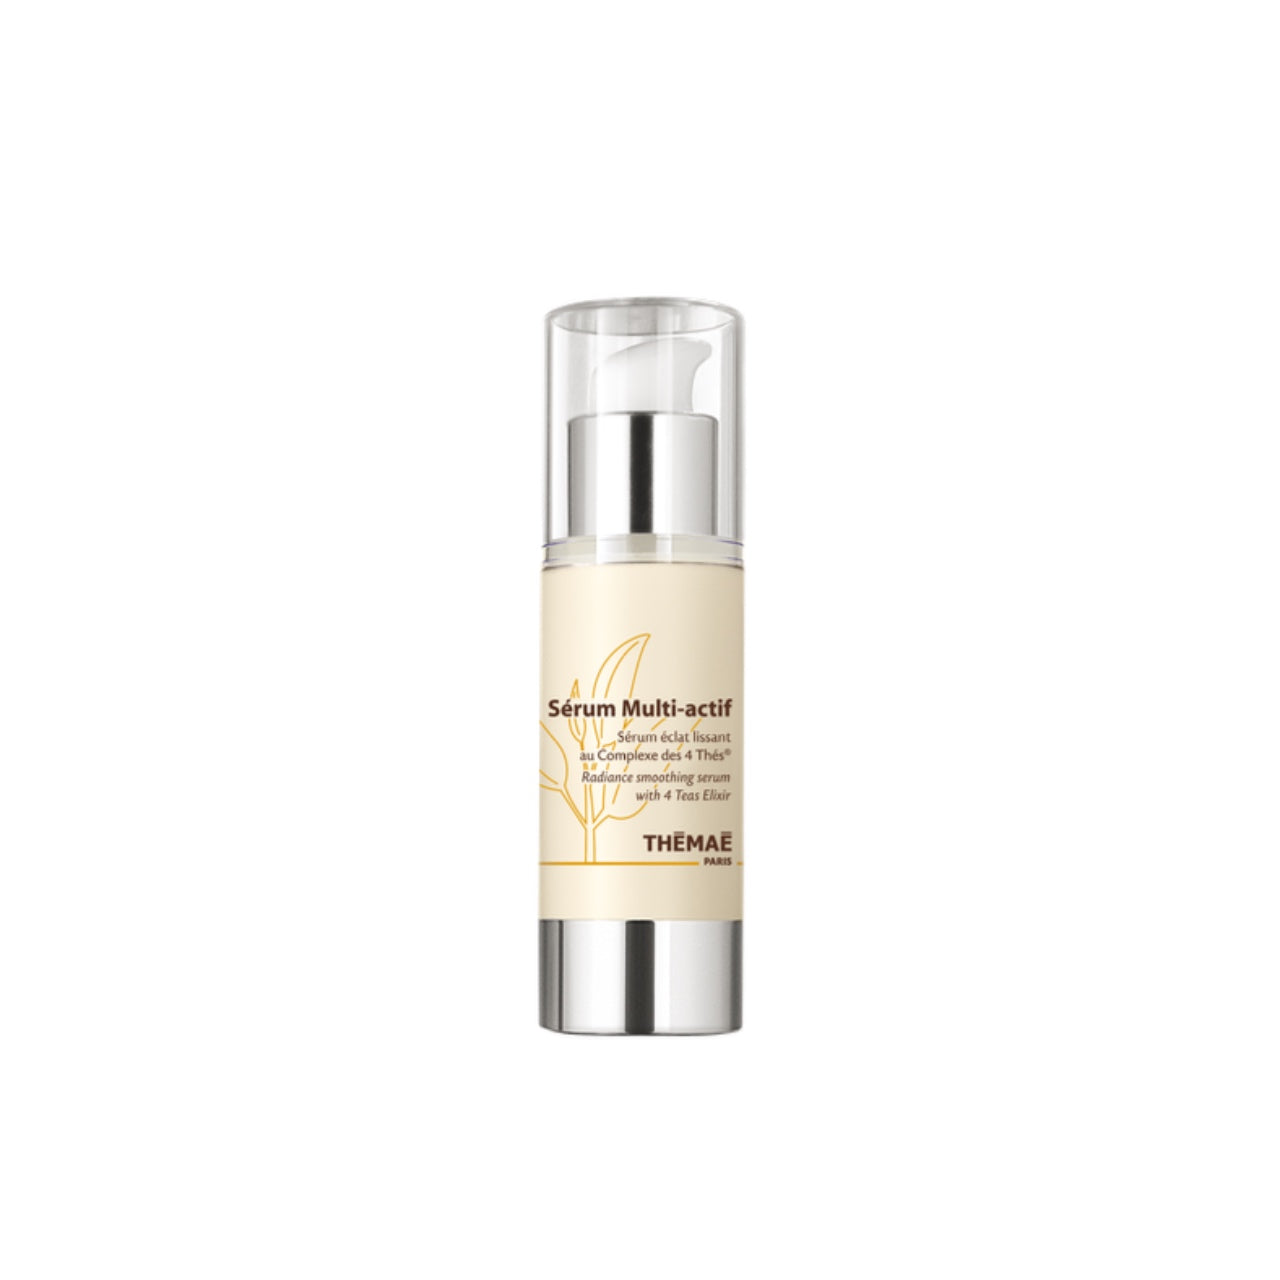 THEMAE Radiance smoothing serum